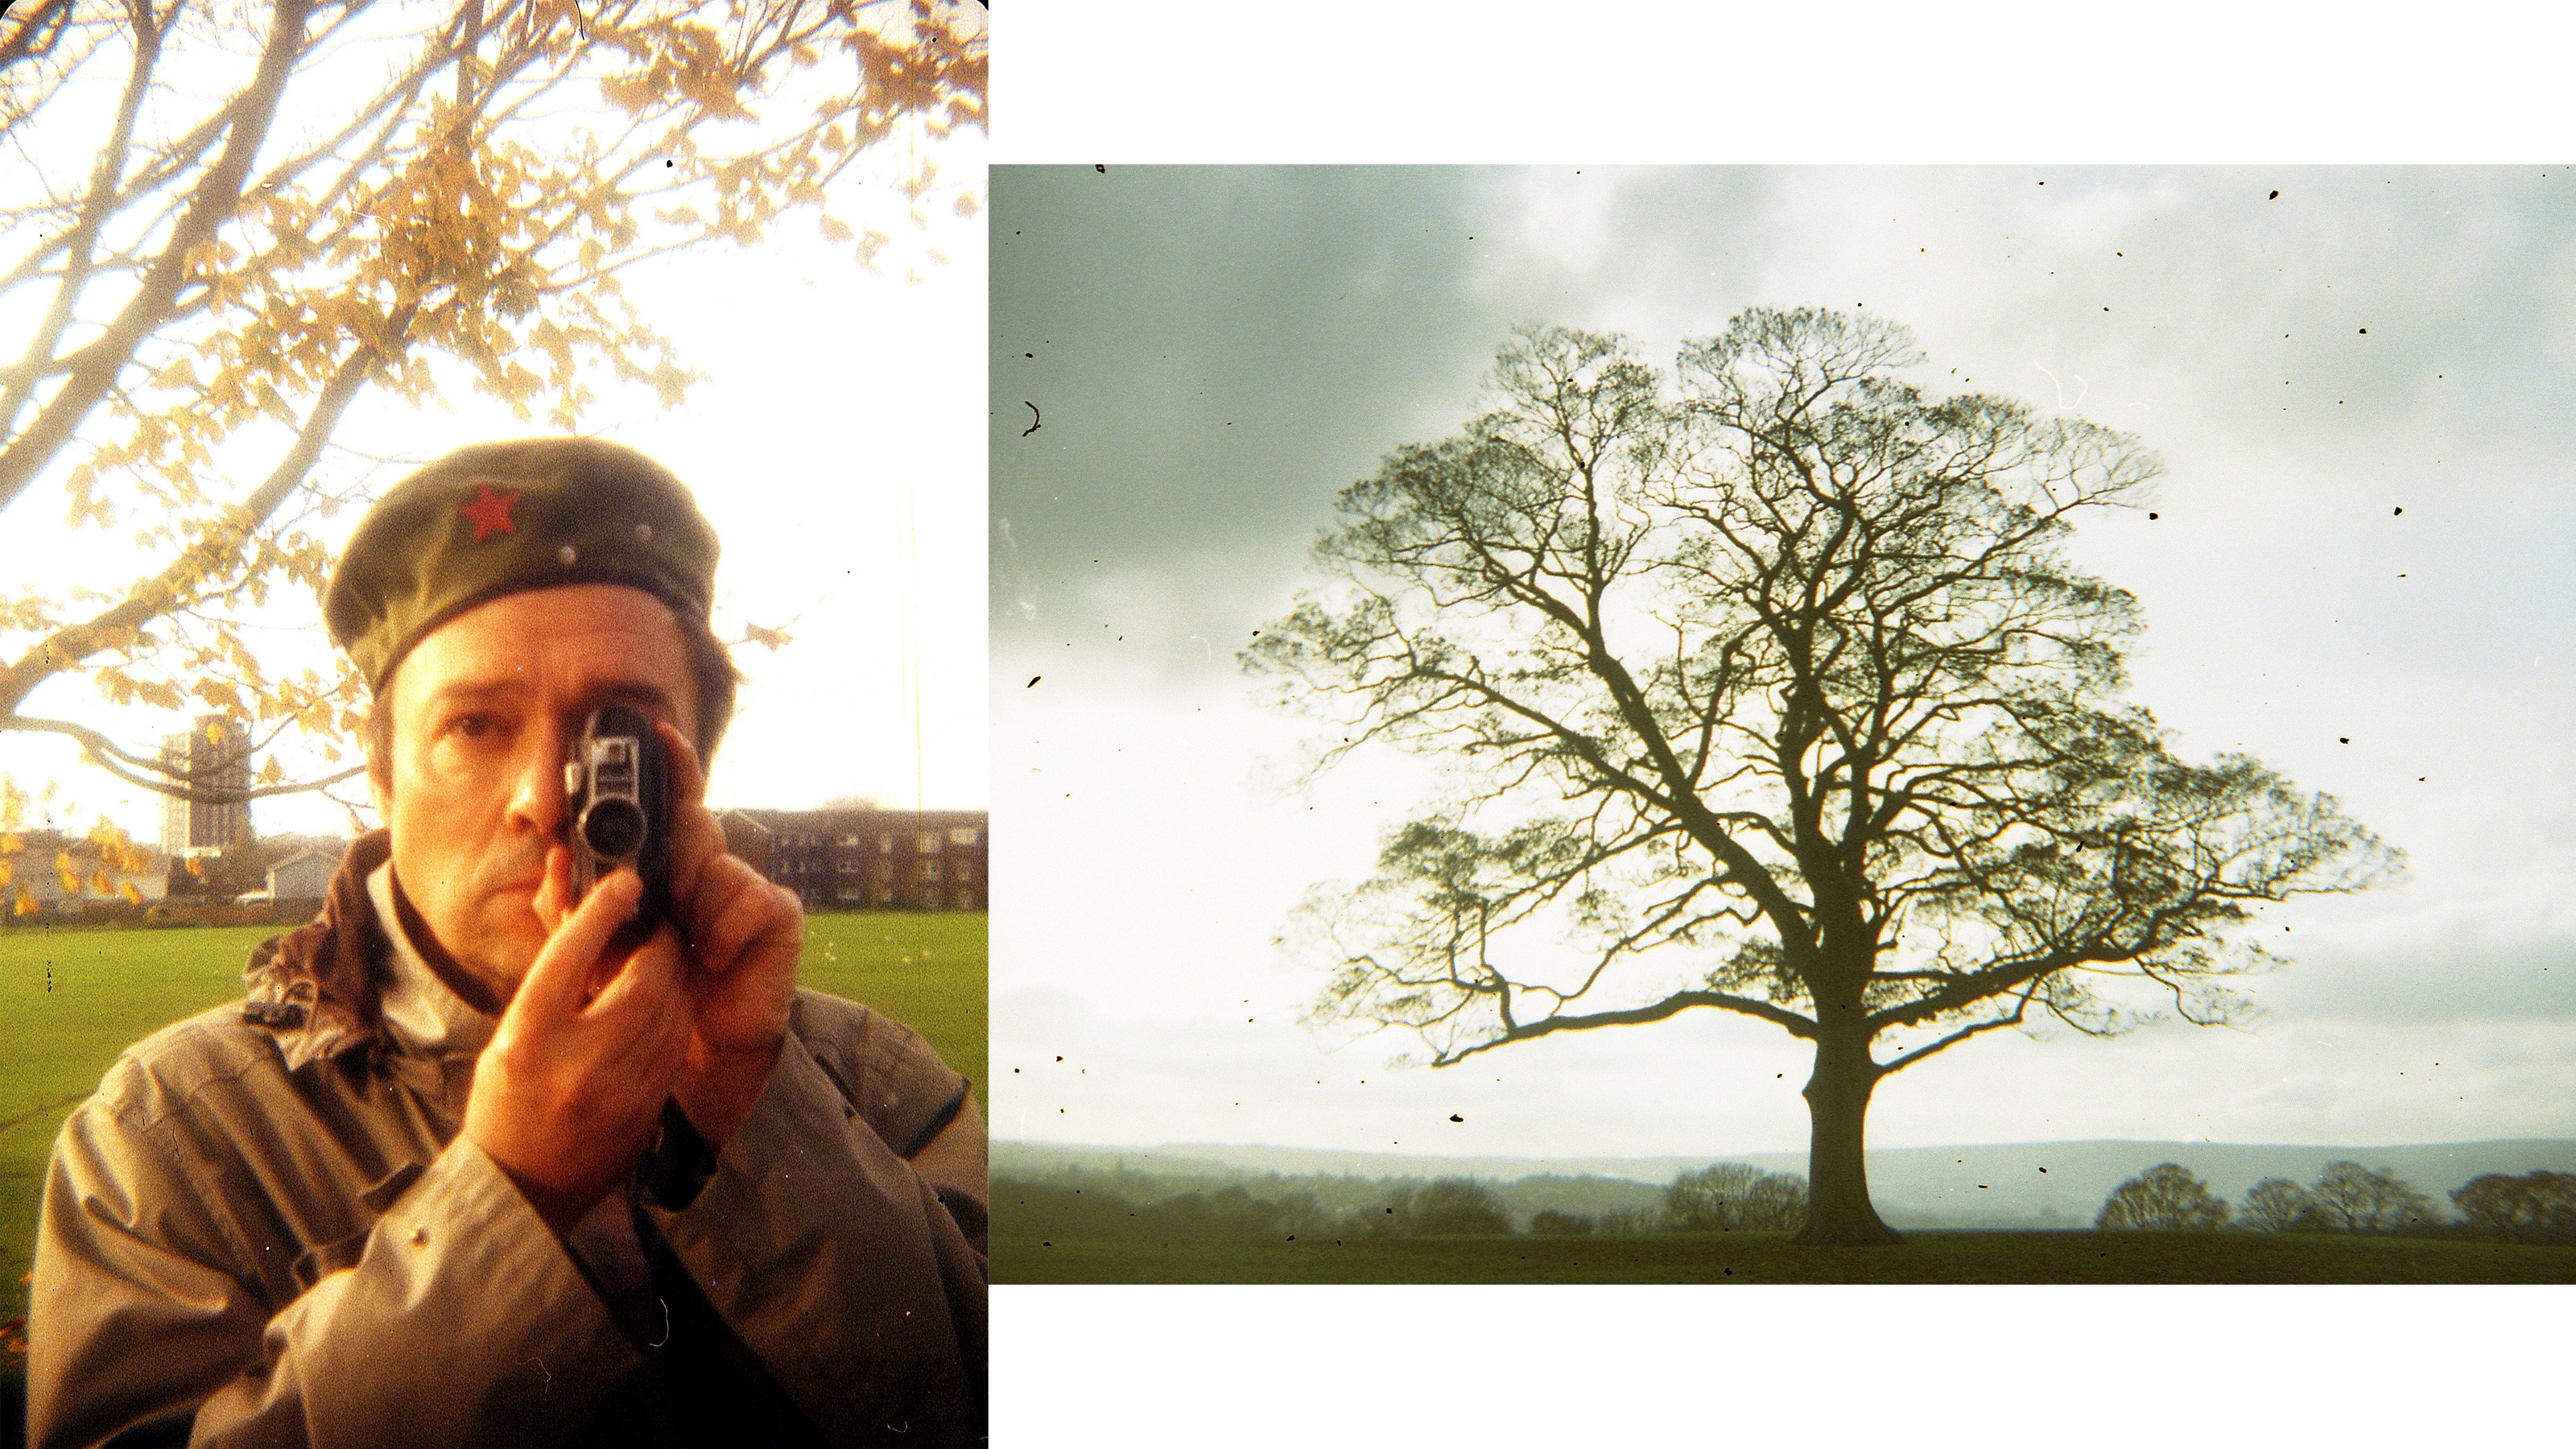 Self portrait photo and photo of a tree taken on the Durst Duca camera